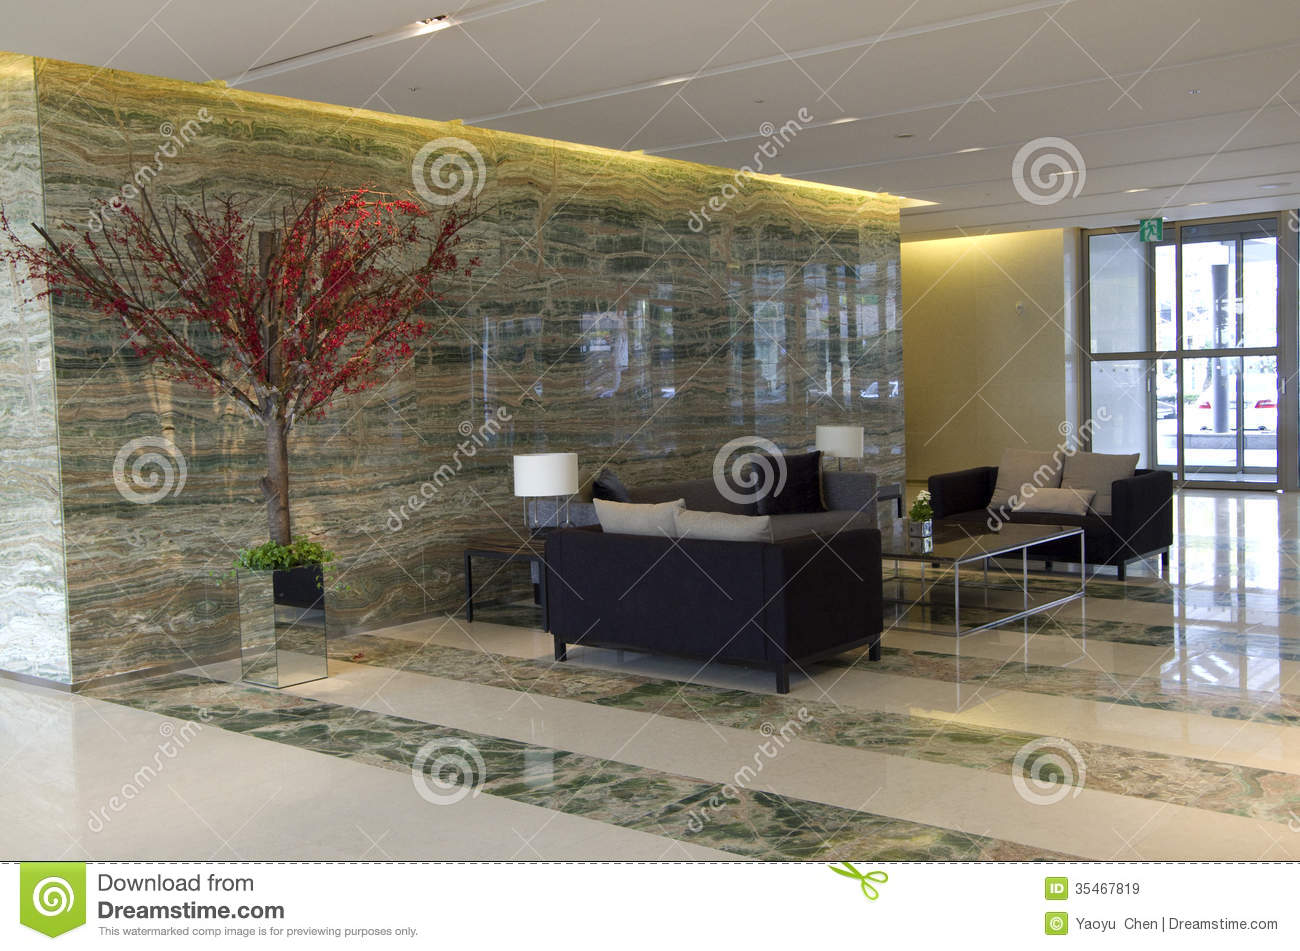 Modern luxury hotel lobby furniture royalty free stock images image